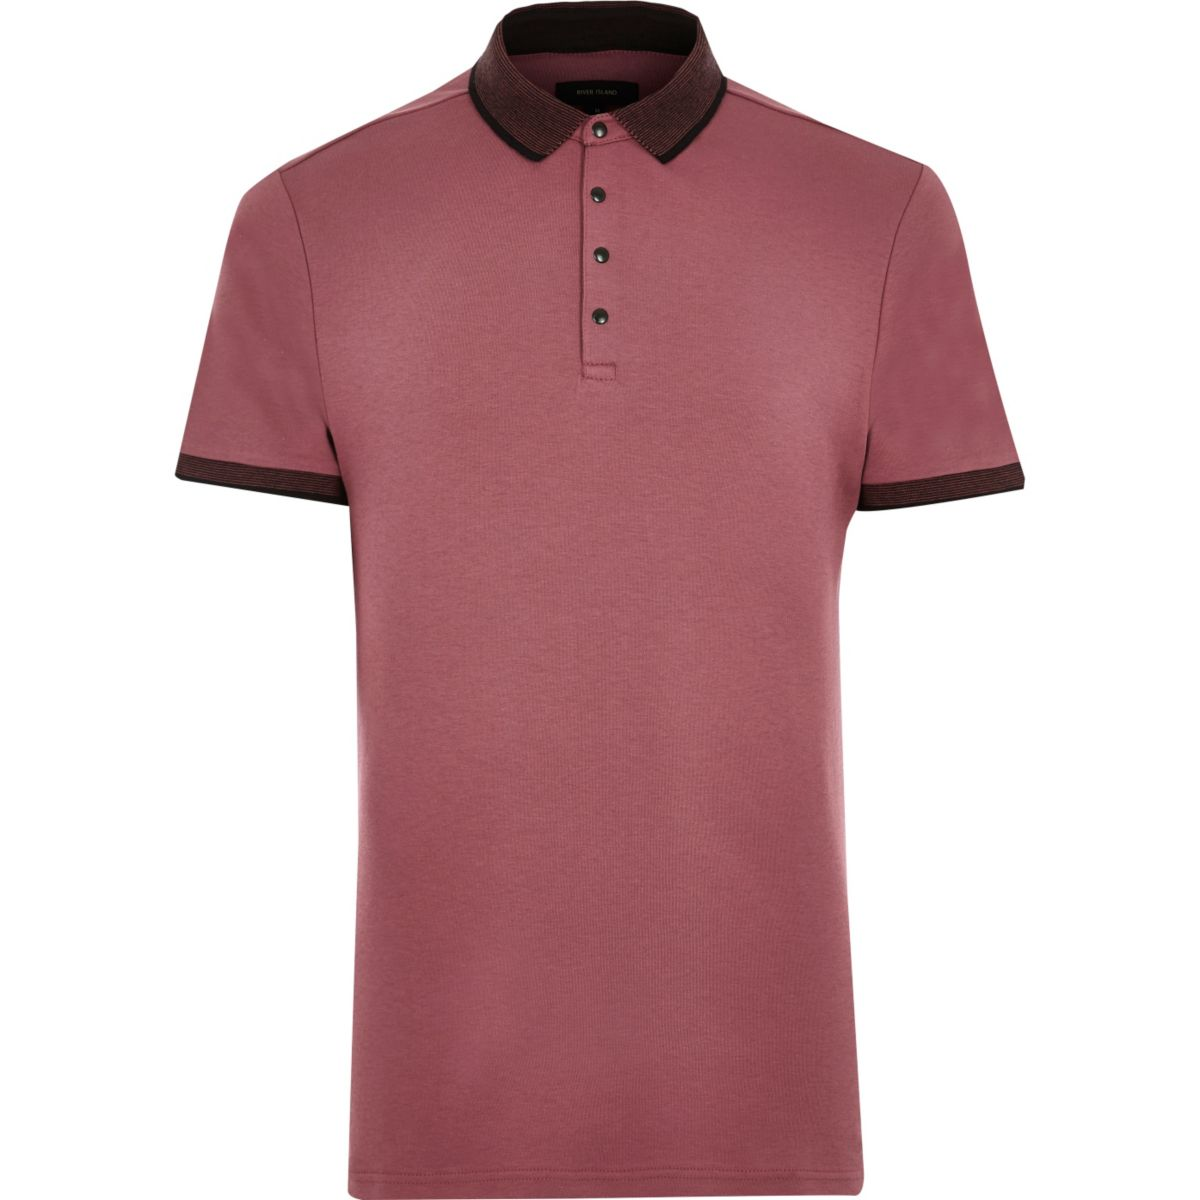 Light red polo shirt